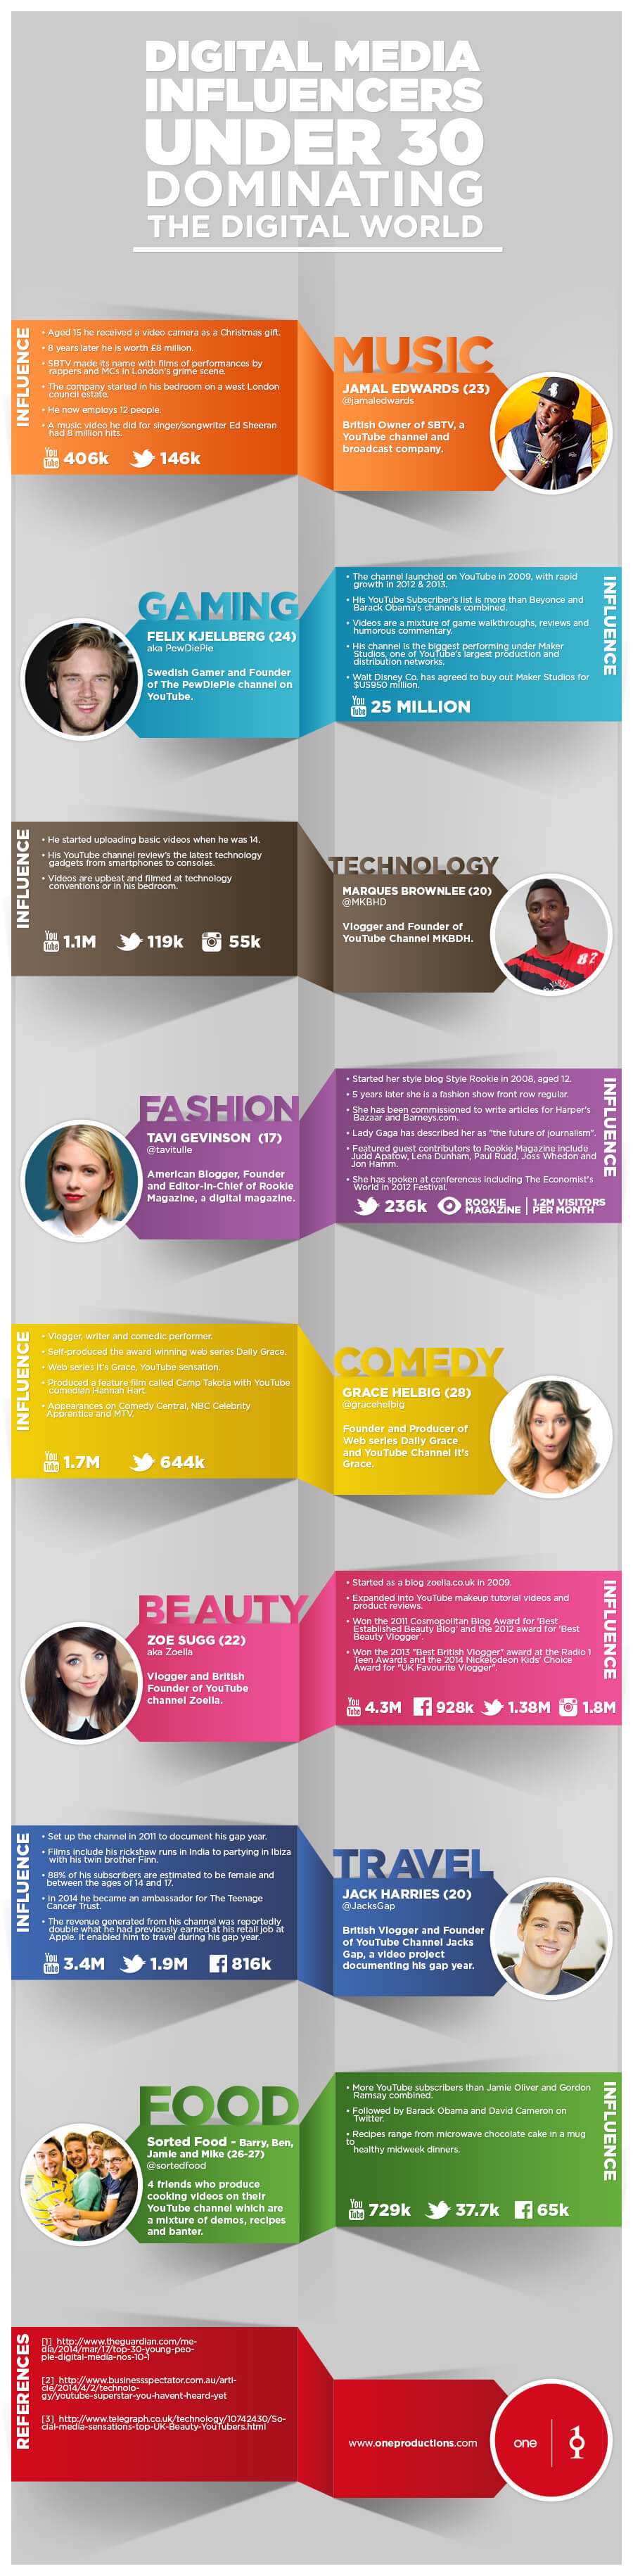 digital-media-influencers-infographic